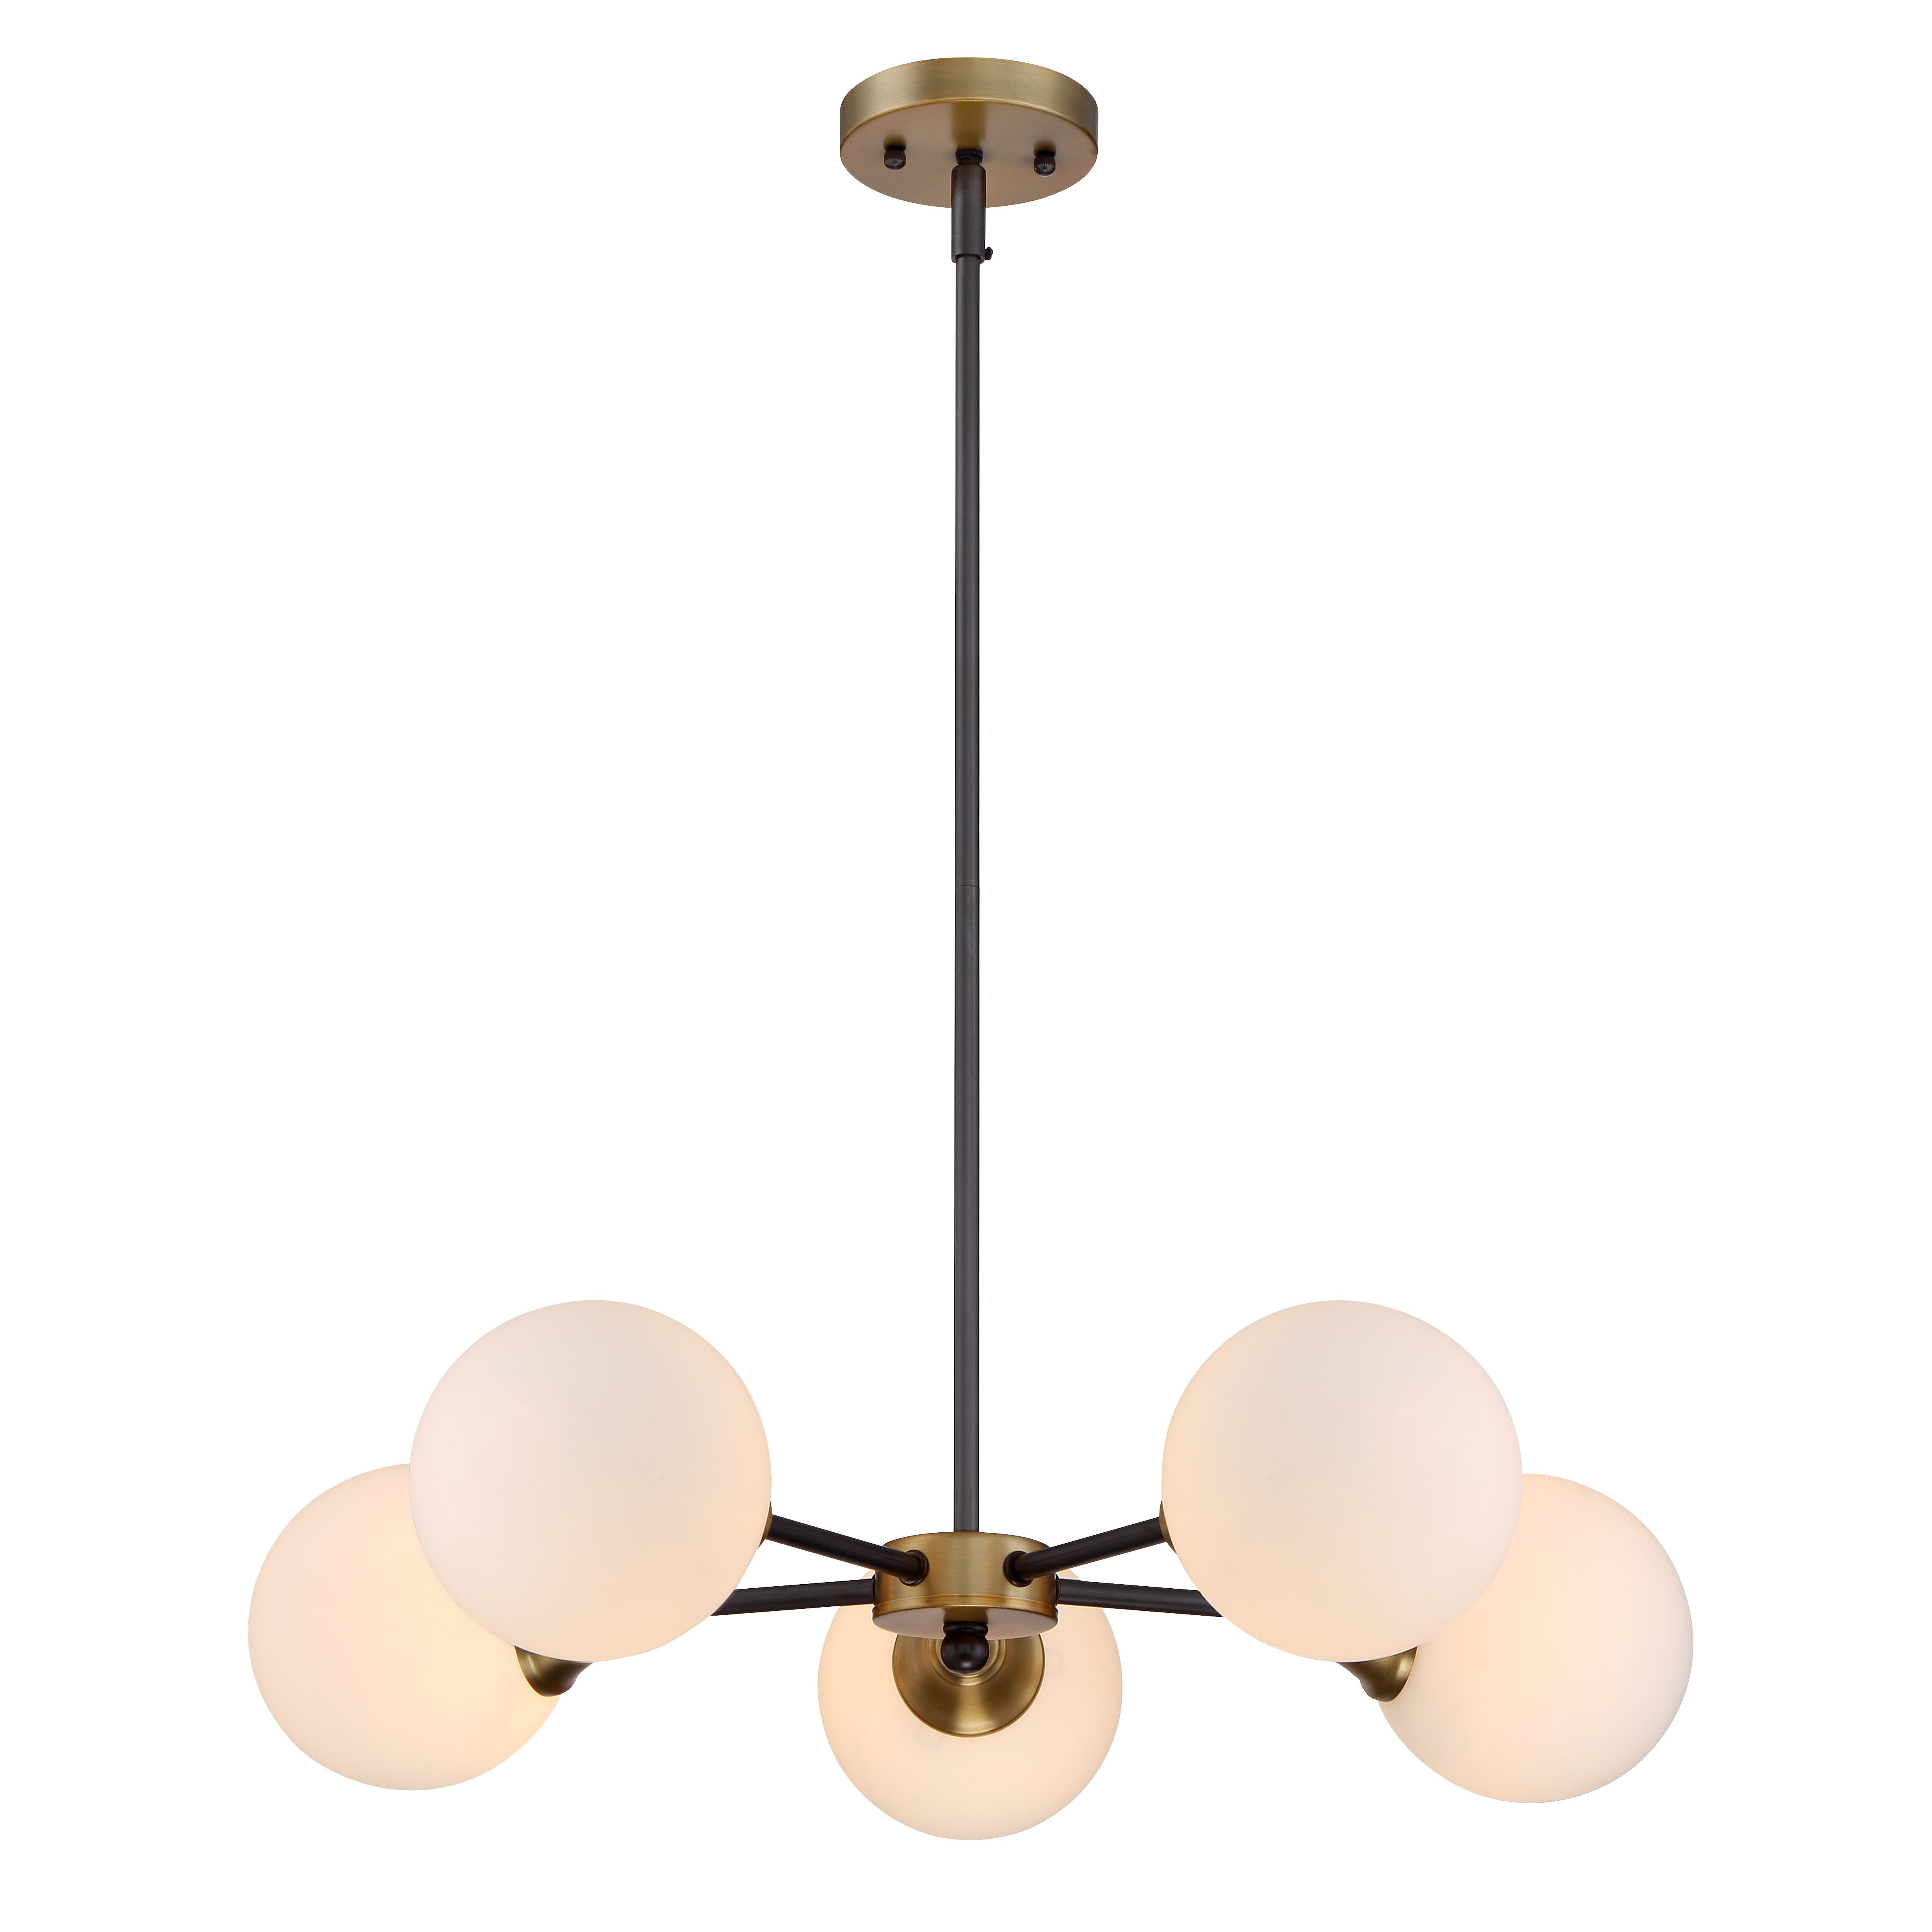 Mercer41 St Helens 5 Light Sputnik Chandelier Mid Century